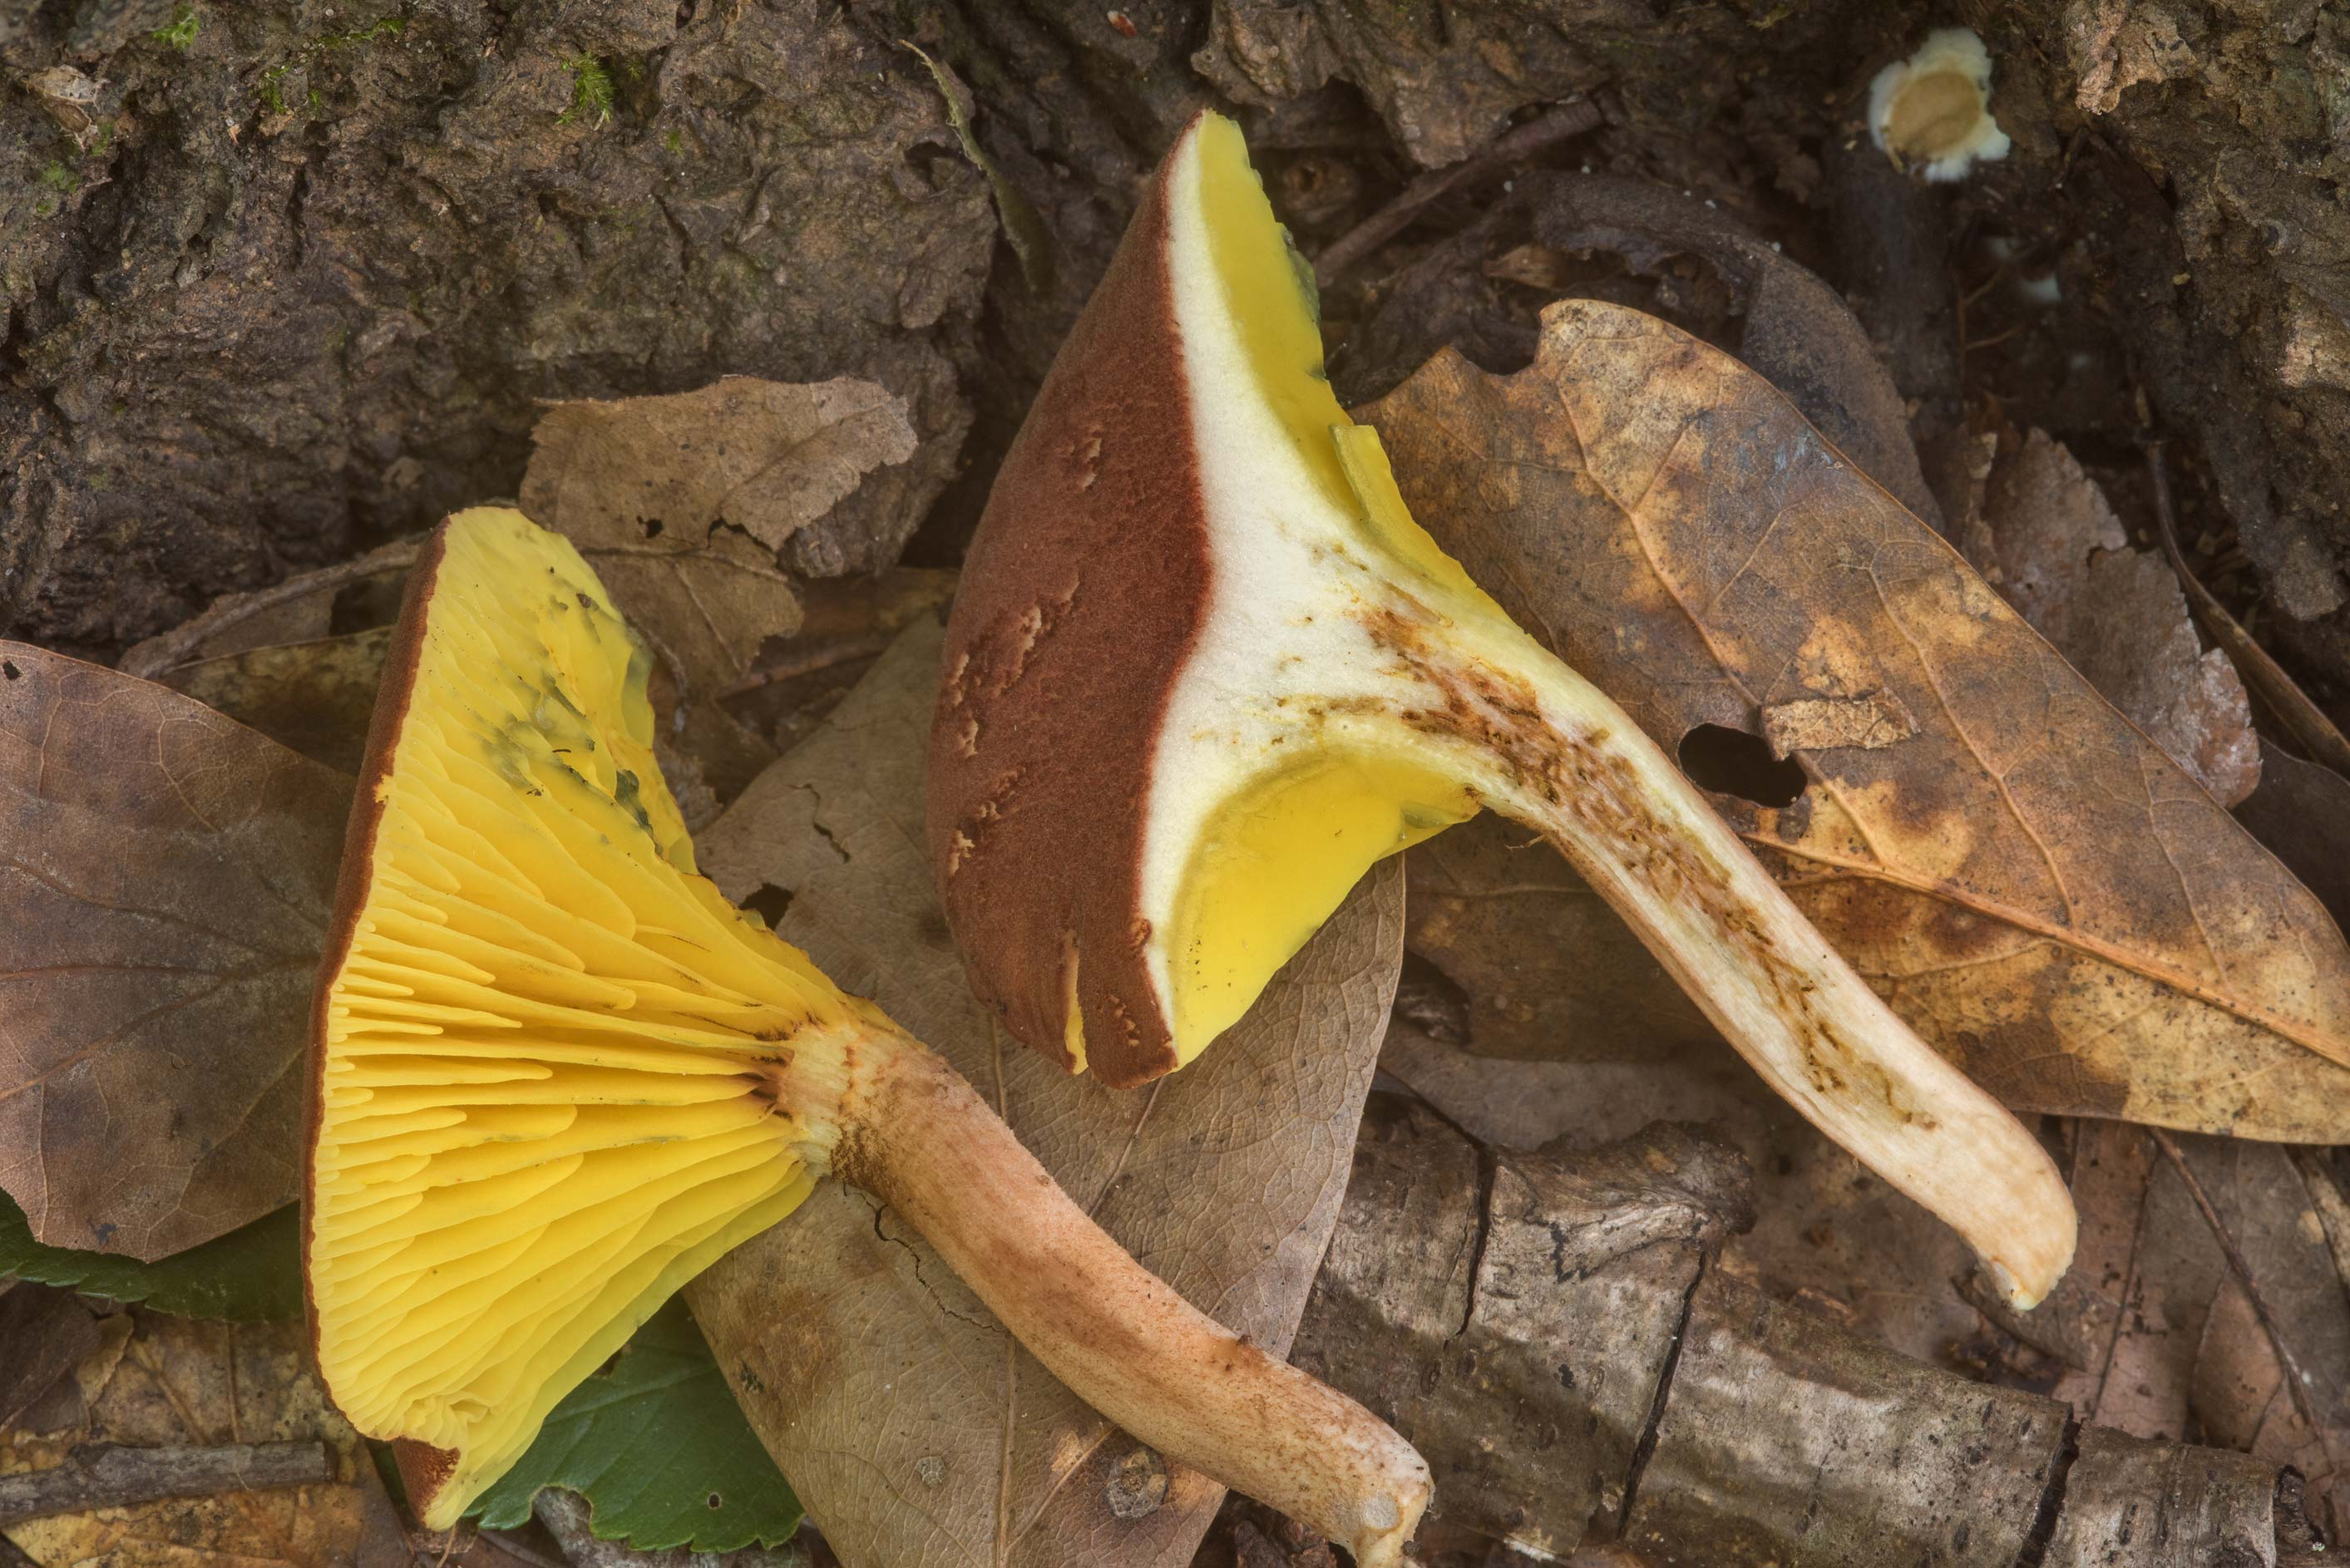 Dissected gilled bolete mushroom Phylloporus...Creek Park. College Station, Texas